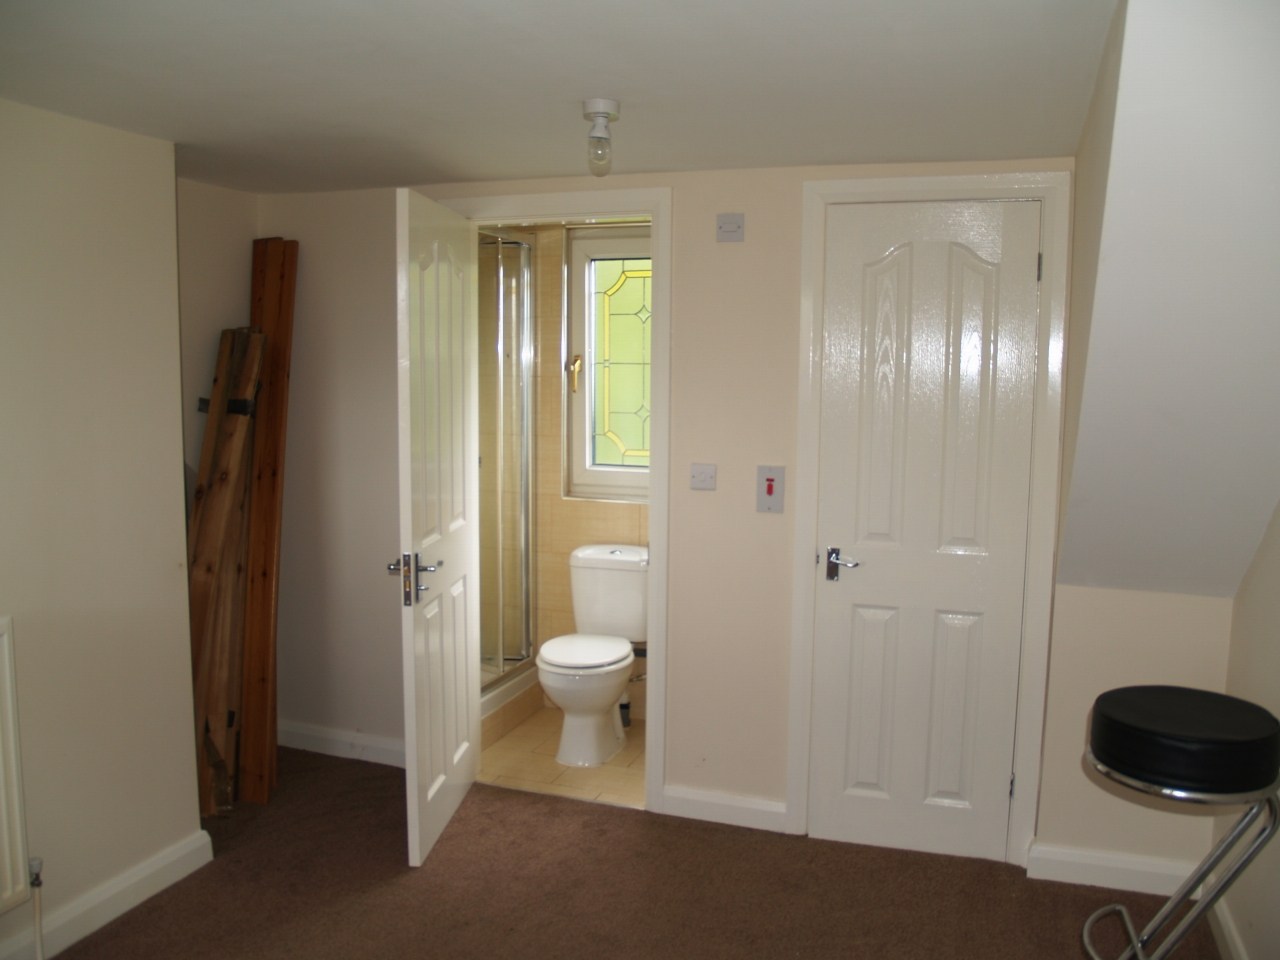 3 bedroom mid terraced house For Sale in Birmingham - Photograph 5.